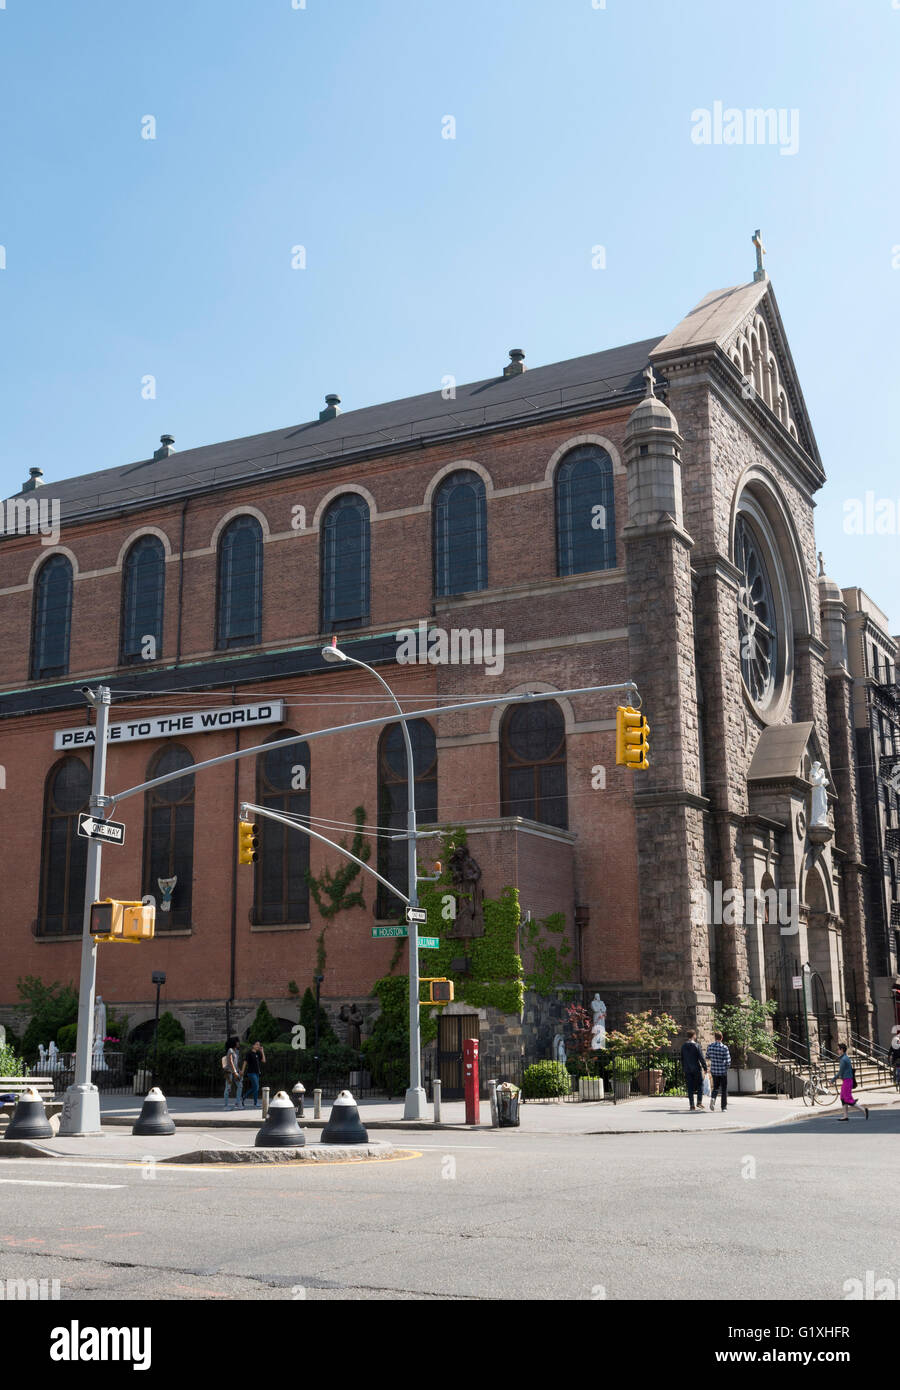 Exterior facade of the Shrine Church of St Anthony of Padua on West Houston Streest, New York. - Stock Image